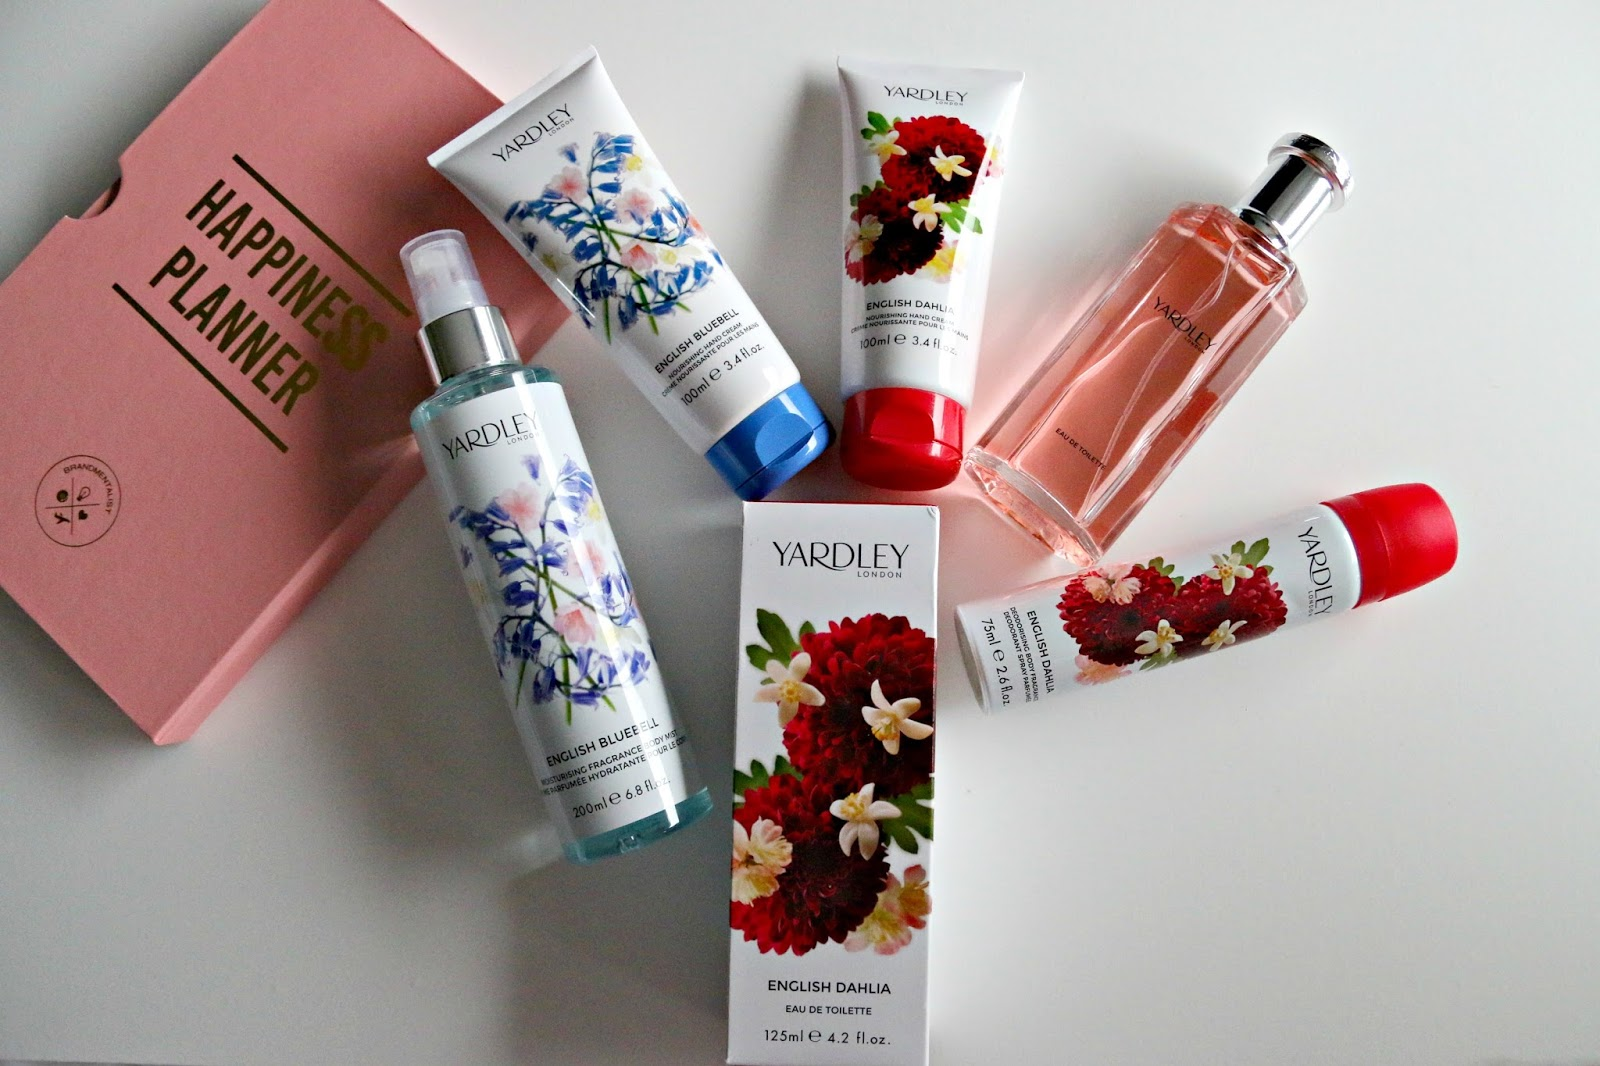 Yardley London English Dahlia and Bluebell Fragrance and Body Care Review Image